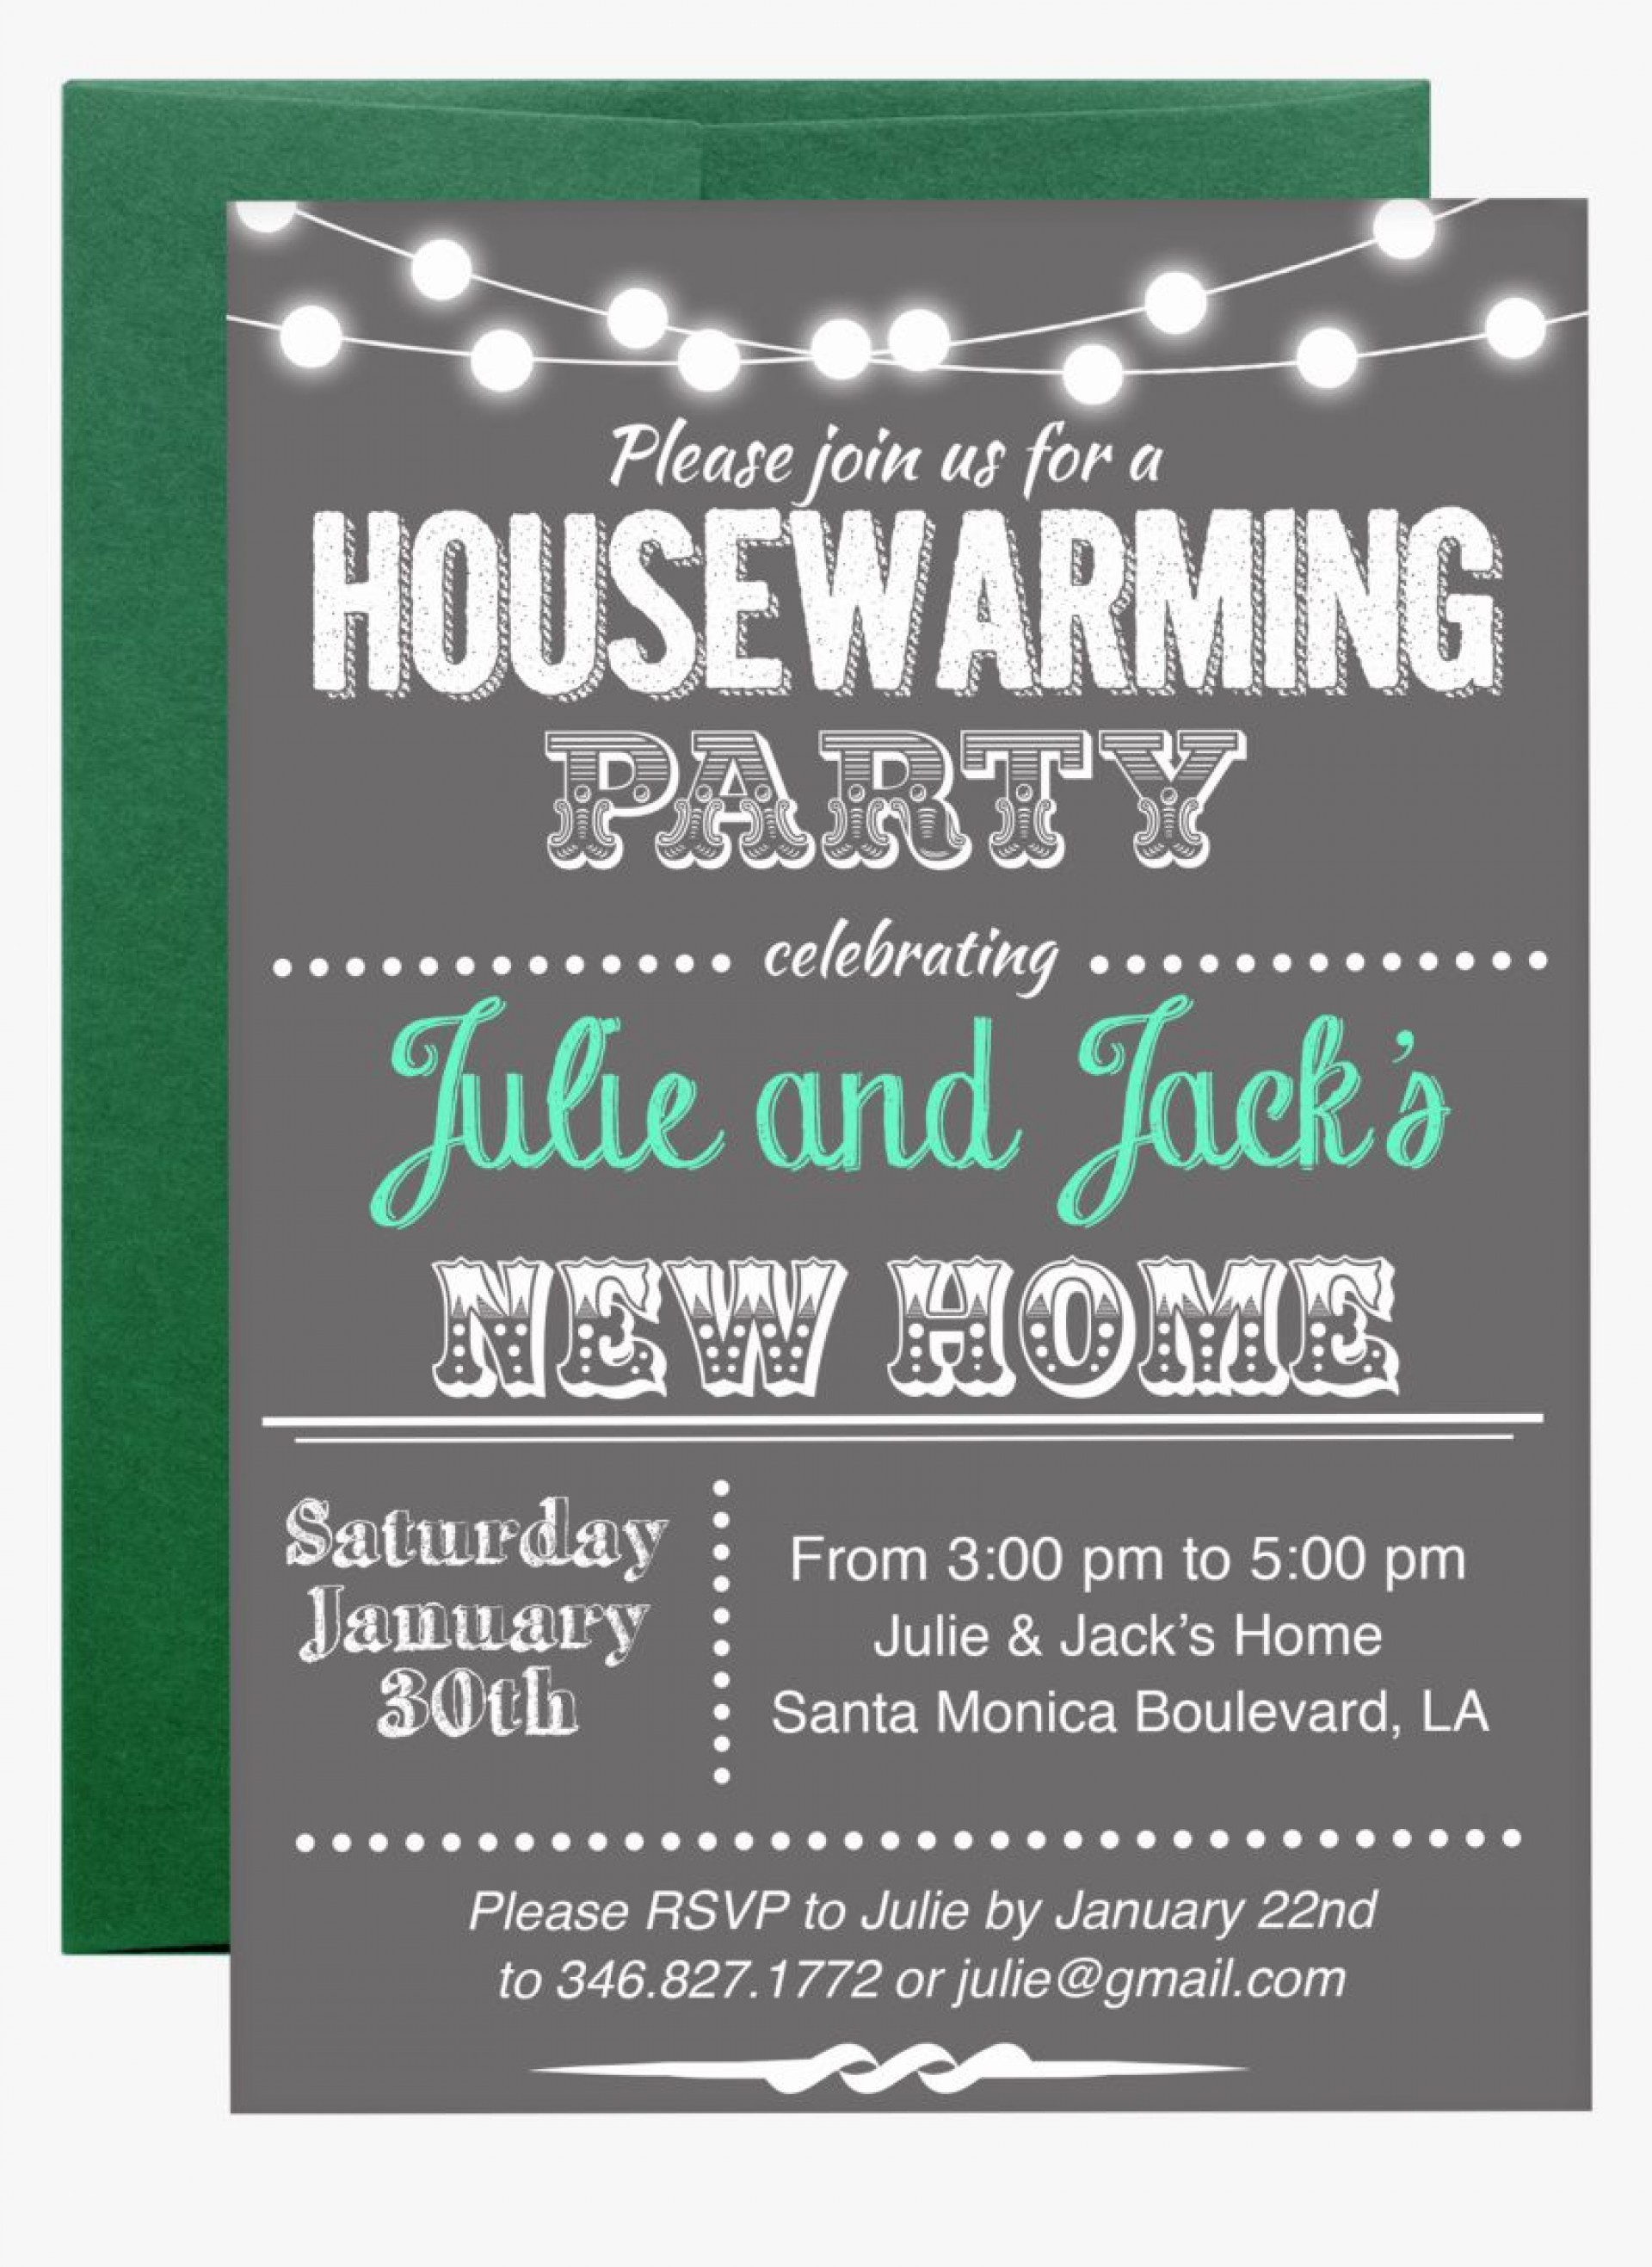 002 Exceptional Free Housewarming Invitation Template High Def  Templates Printable India Video Download1920